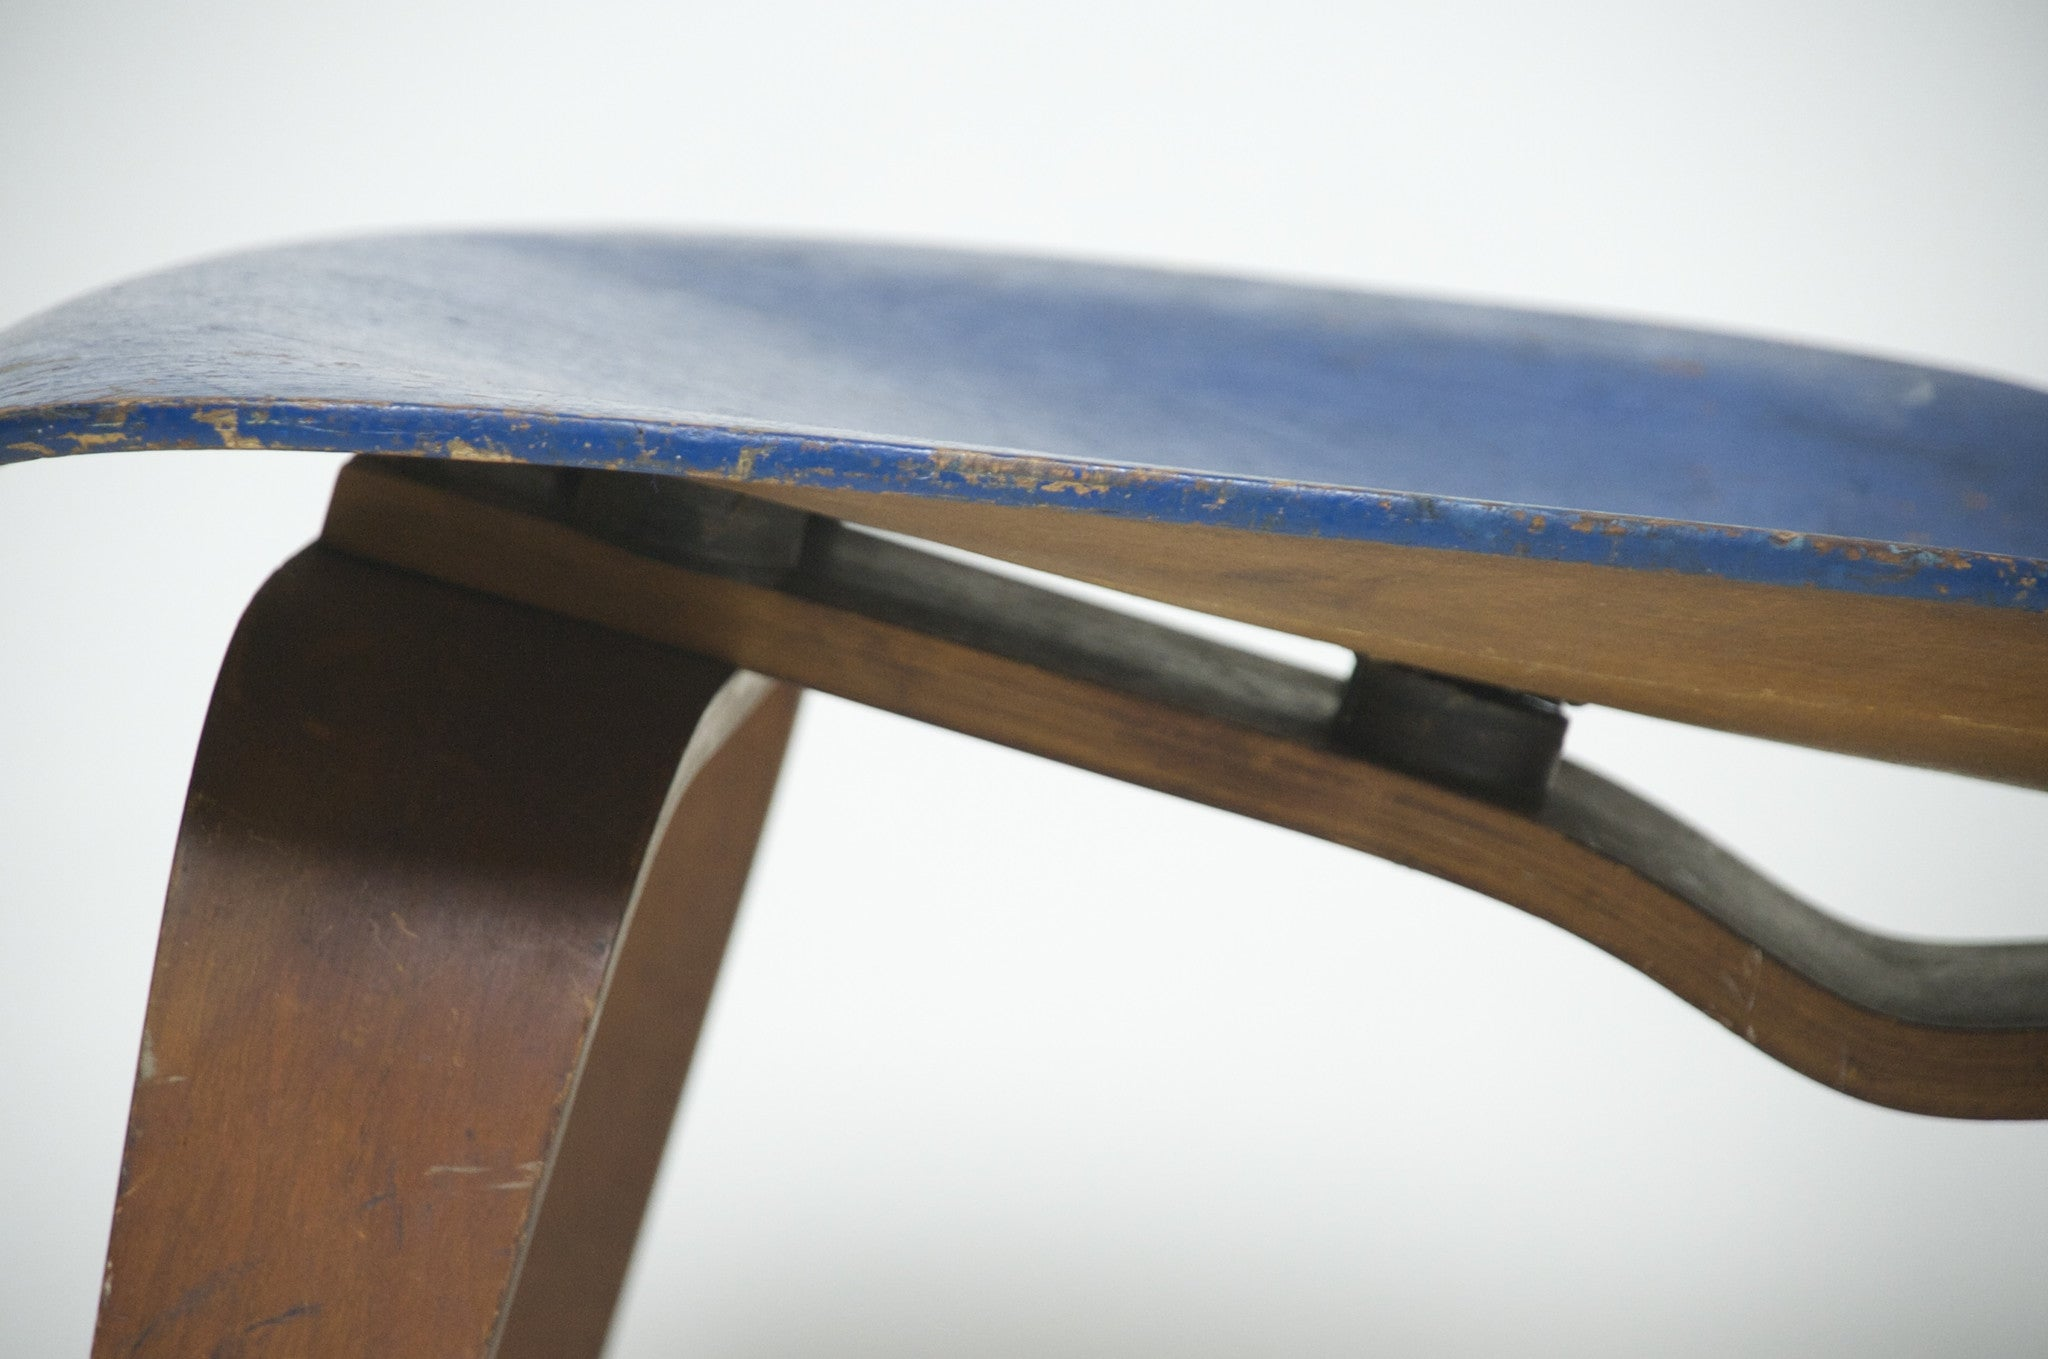 SOLD Eames Evans Herman Miller 1947 LCW Early Rare Chair, All Original Lounge Chair